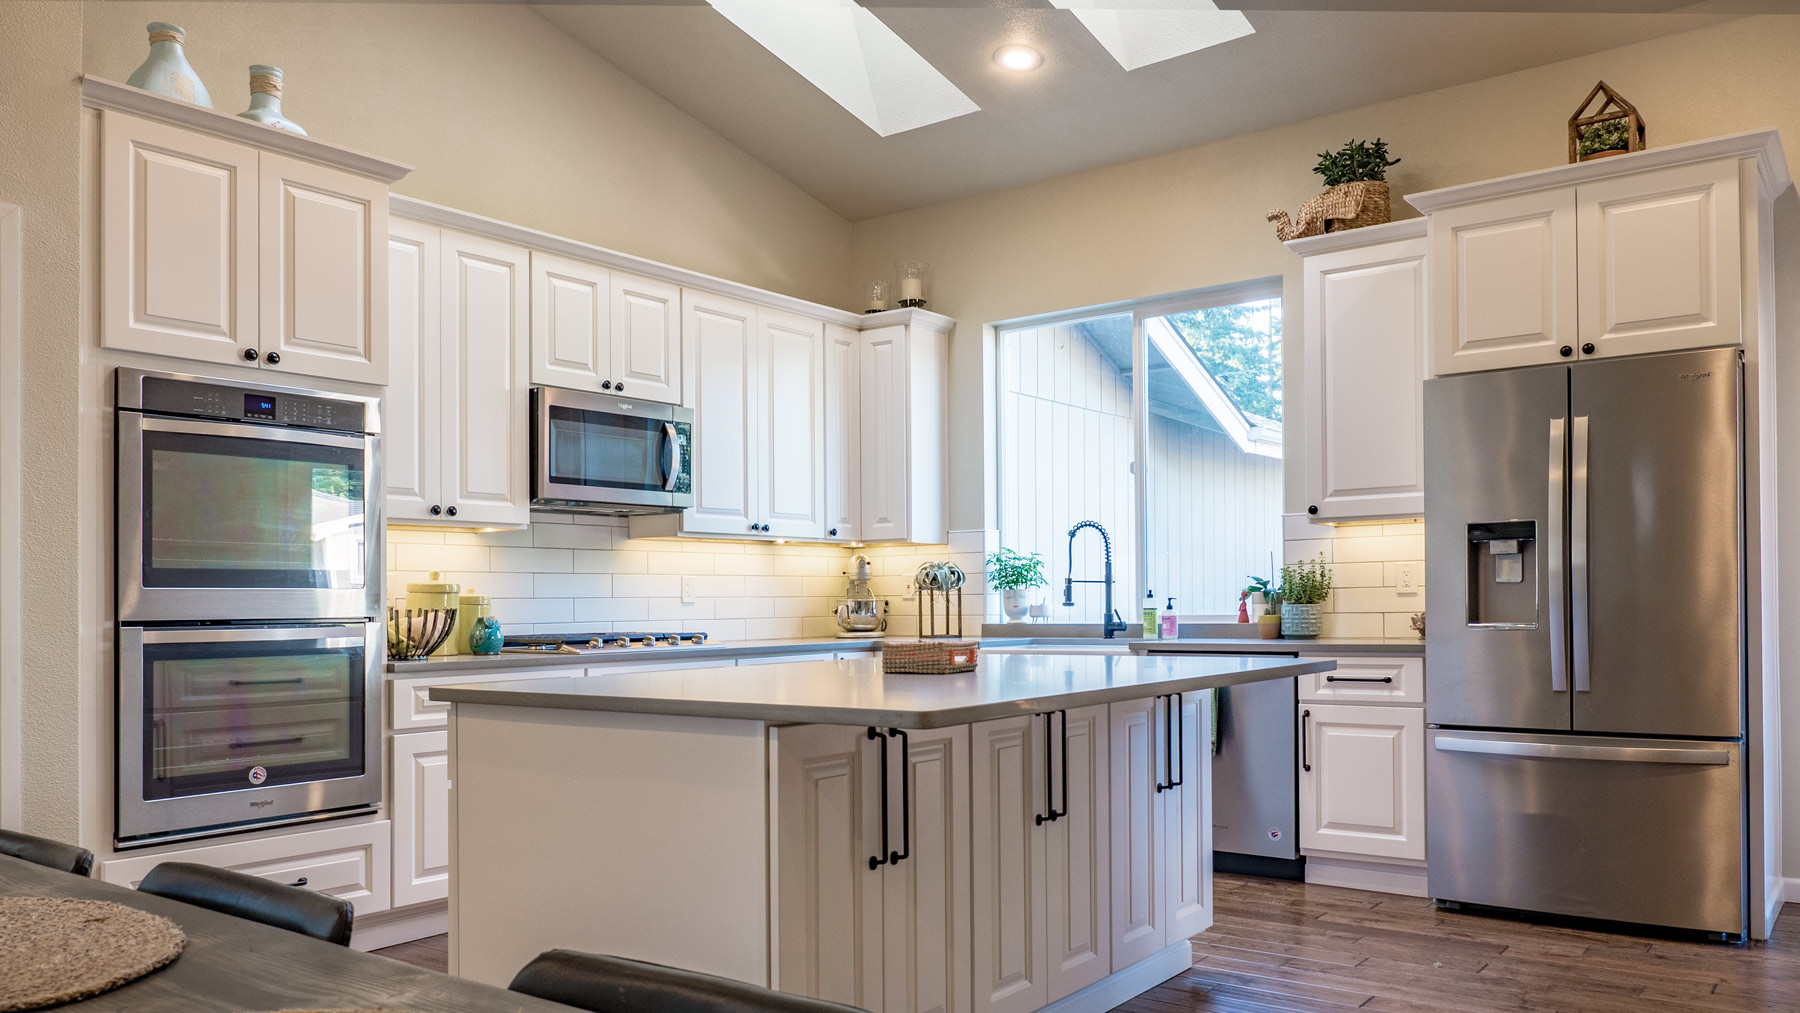 _1960438-HDR-Kitchen-Overview-wide.jpg